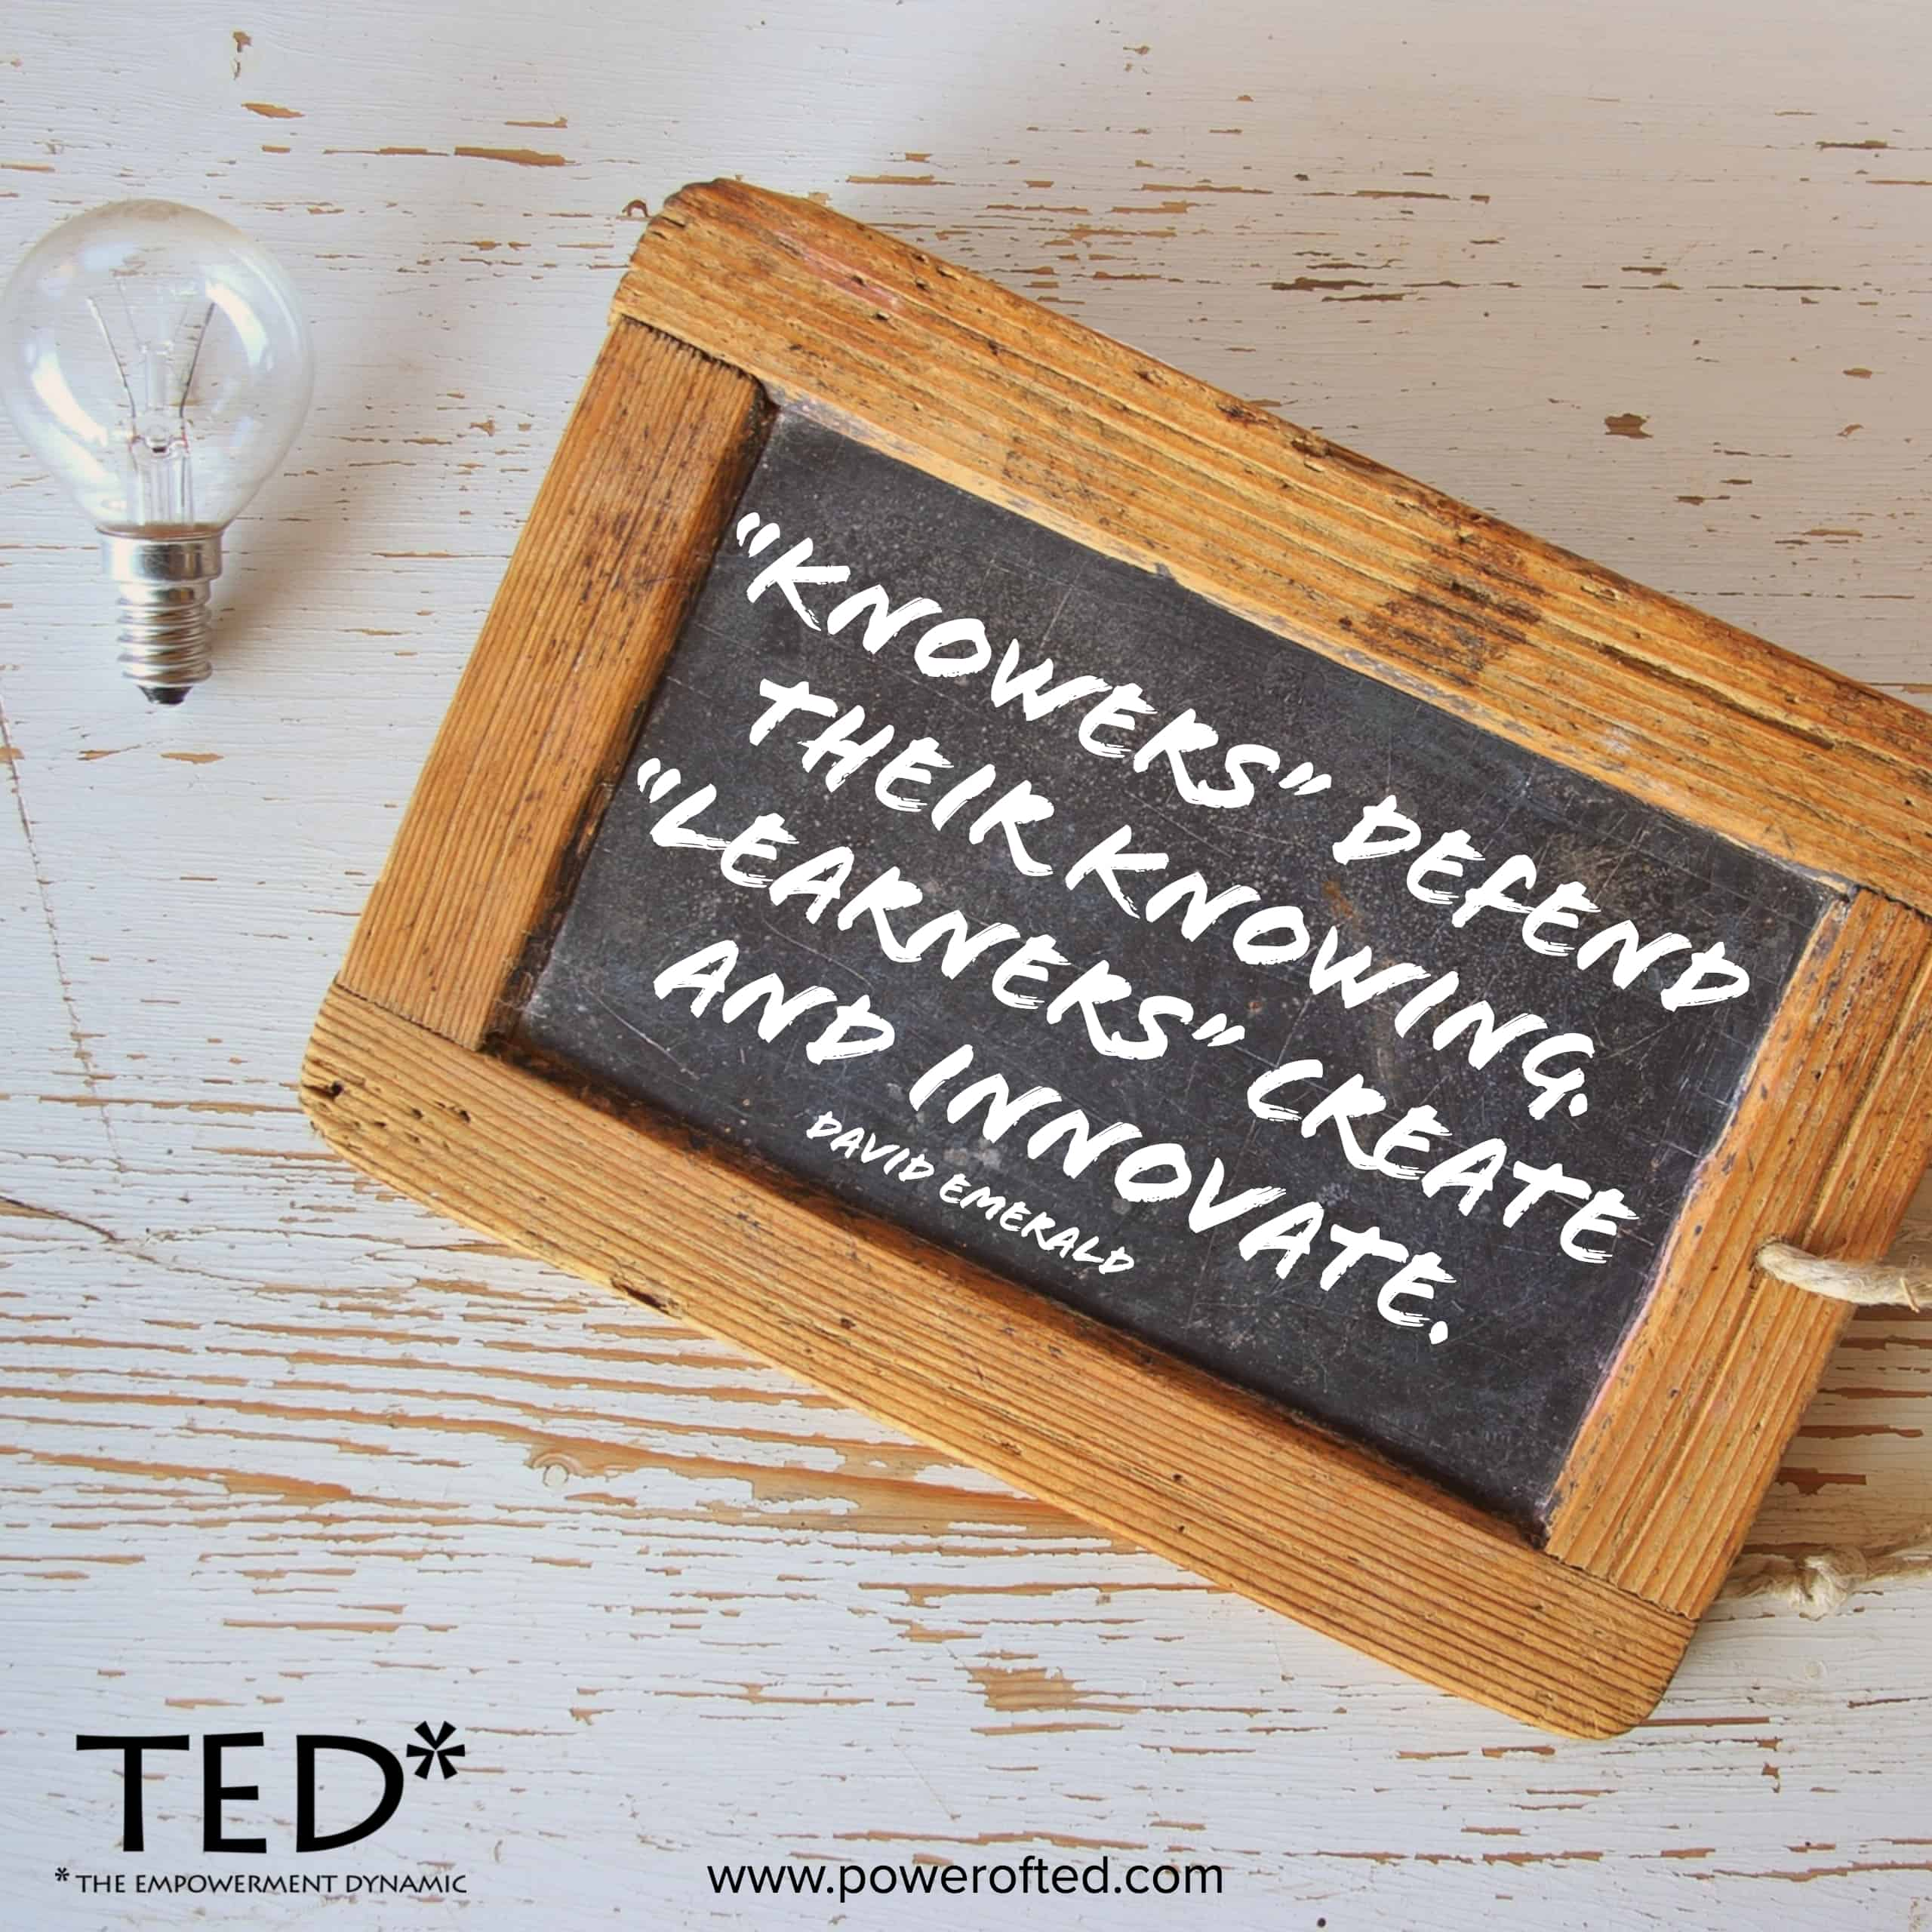 """Knowers"" defend their knowing. ""Learners"" create and innovate."